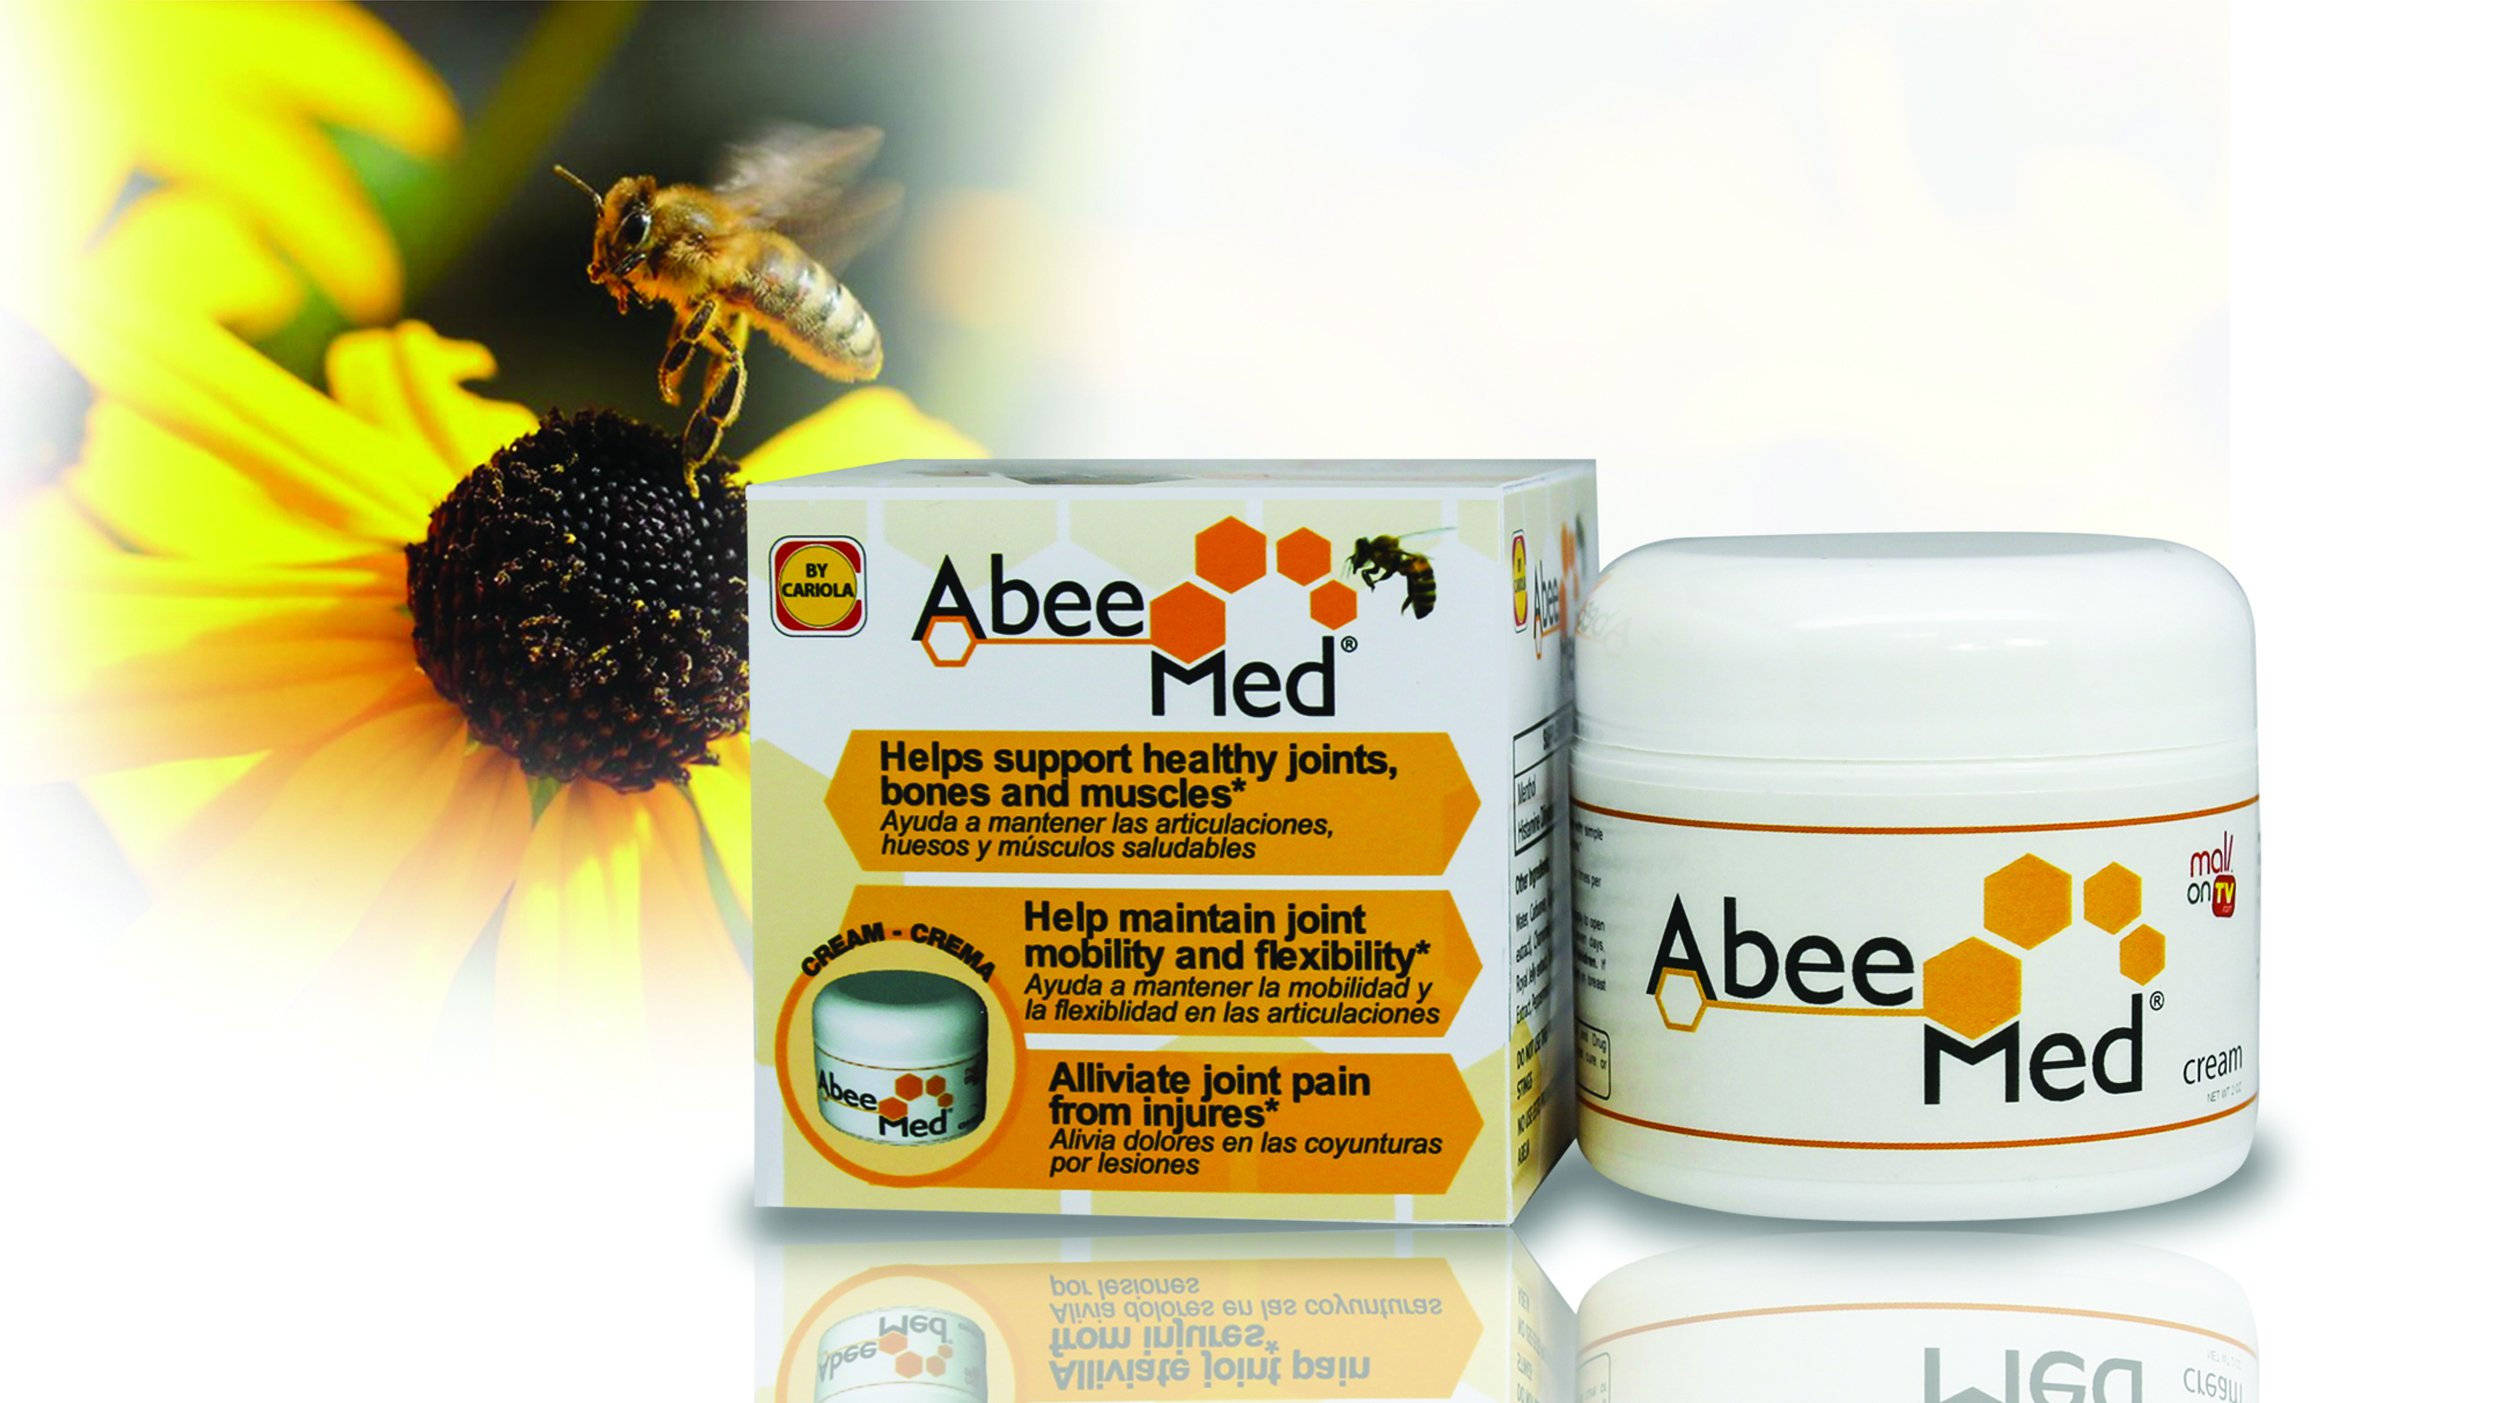 Amazon.com: Abeemed 2 Frascos + 1 Crema: Health & Personal Care